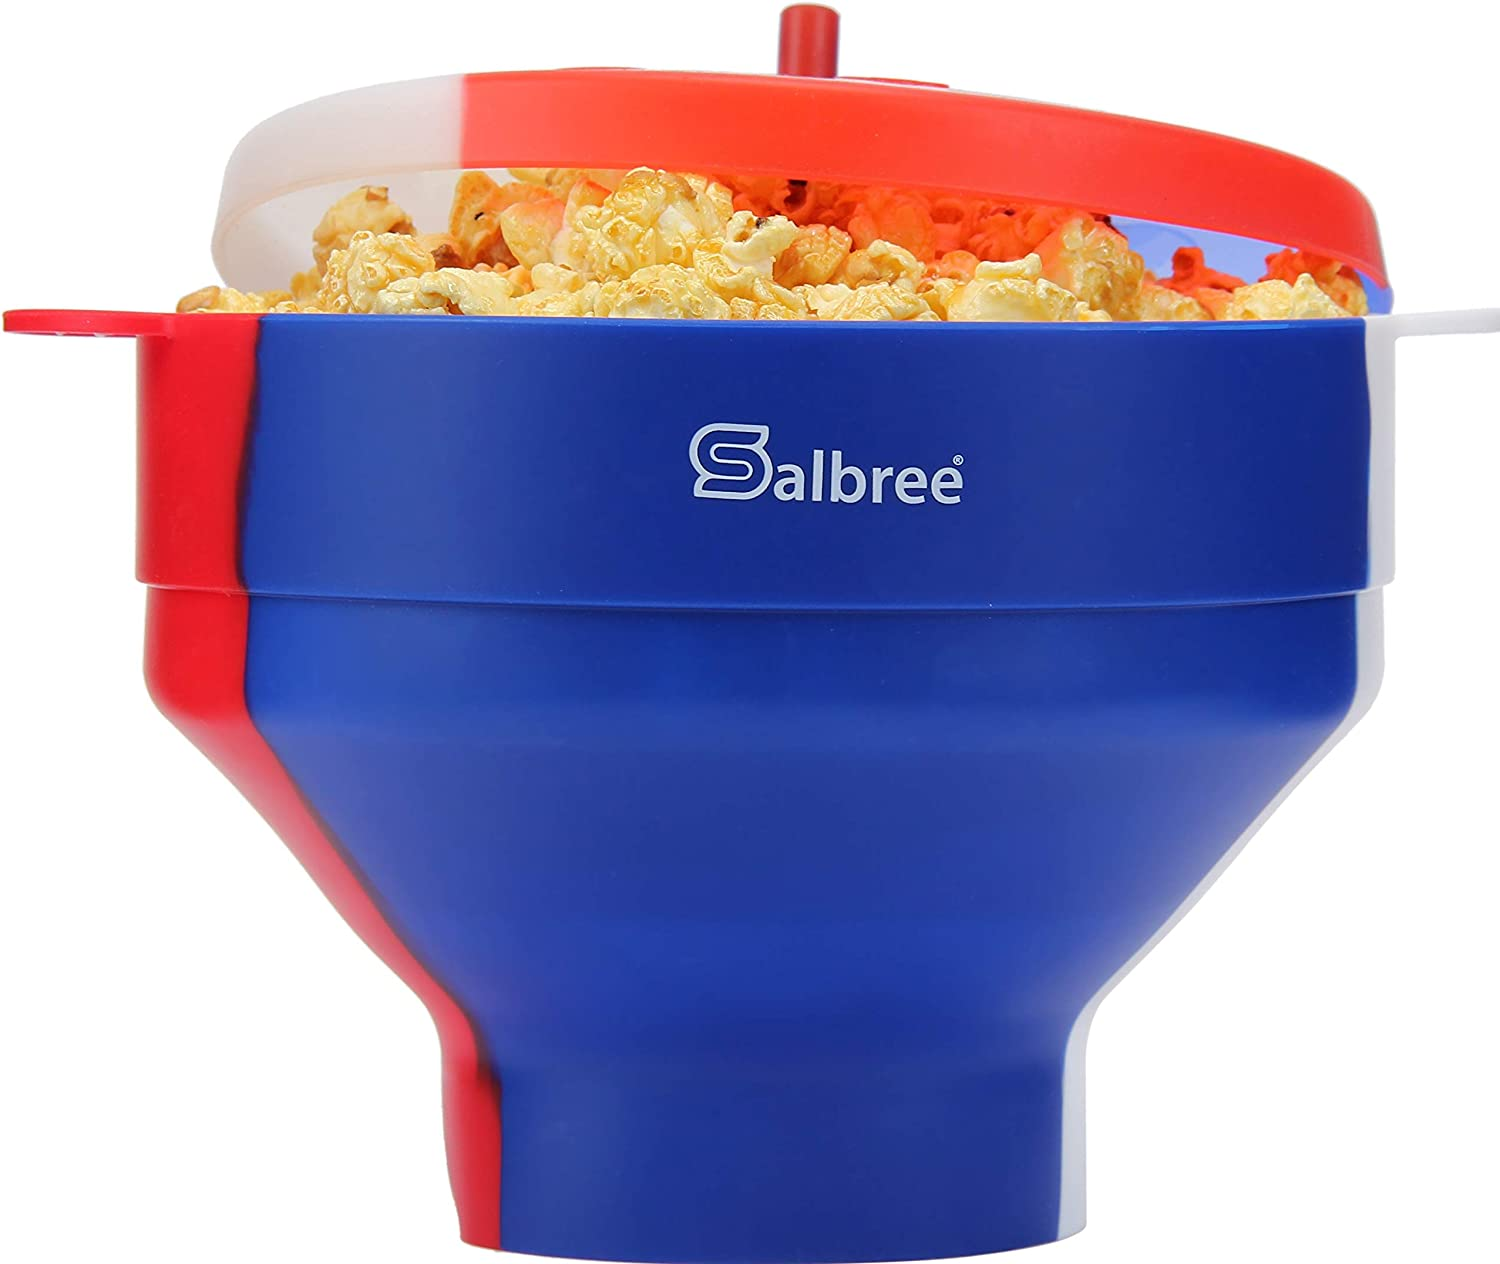 Original Salbree Red White & Blue, American Pride, Microwave Popcorn Popper, Silicone Popcorn Maker, Collapsible Bowl BPA Free - 18 Colors Available (Red/White/Blue)